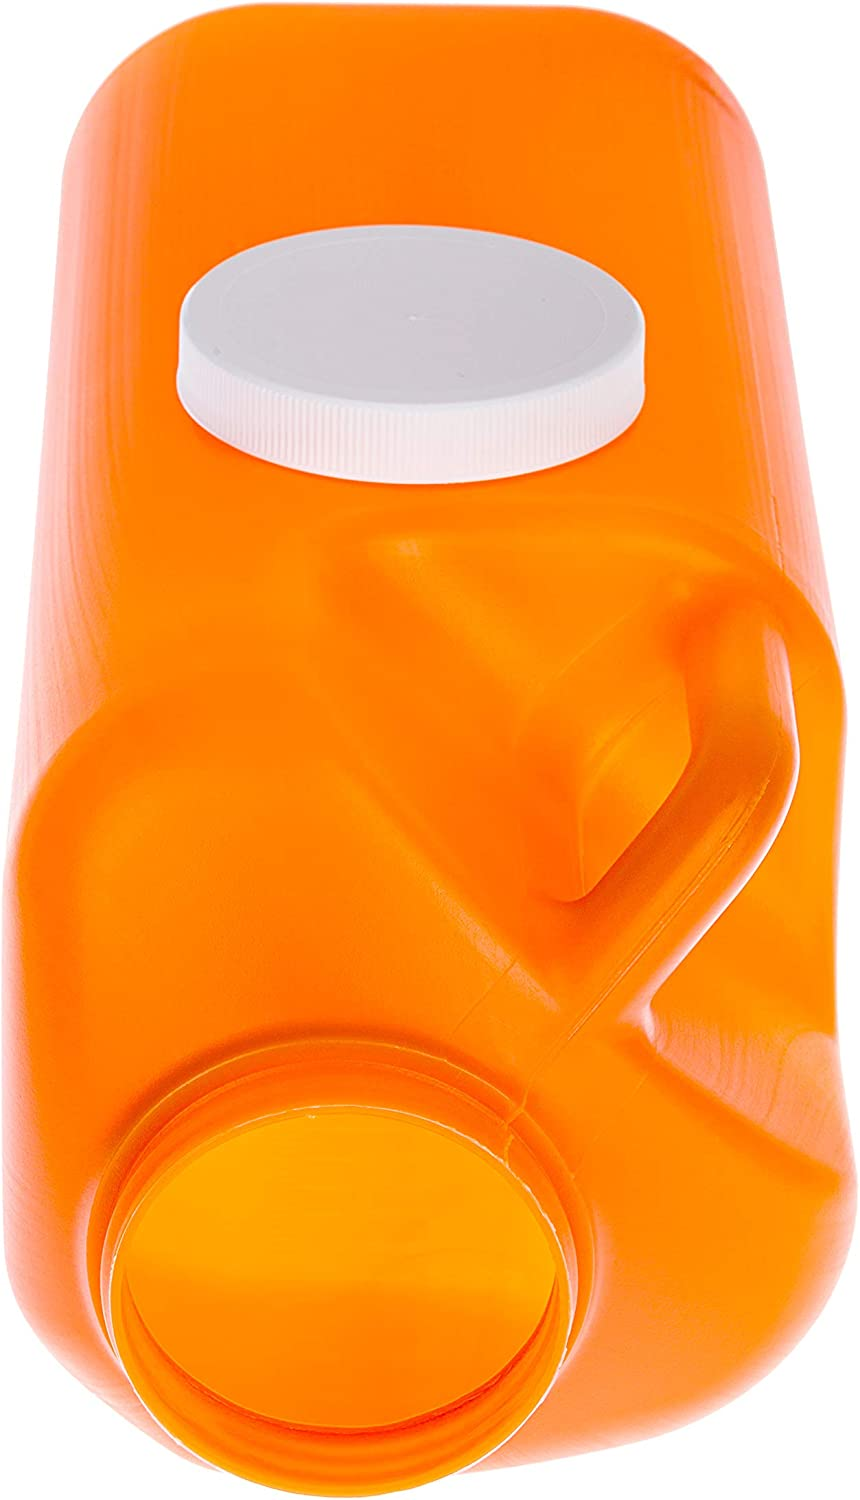 Large Male Urinal with Leak Proof Screw Cap Lid (3000 mL or 101 oz.) (Amber Color): Health & Personal Care